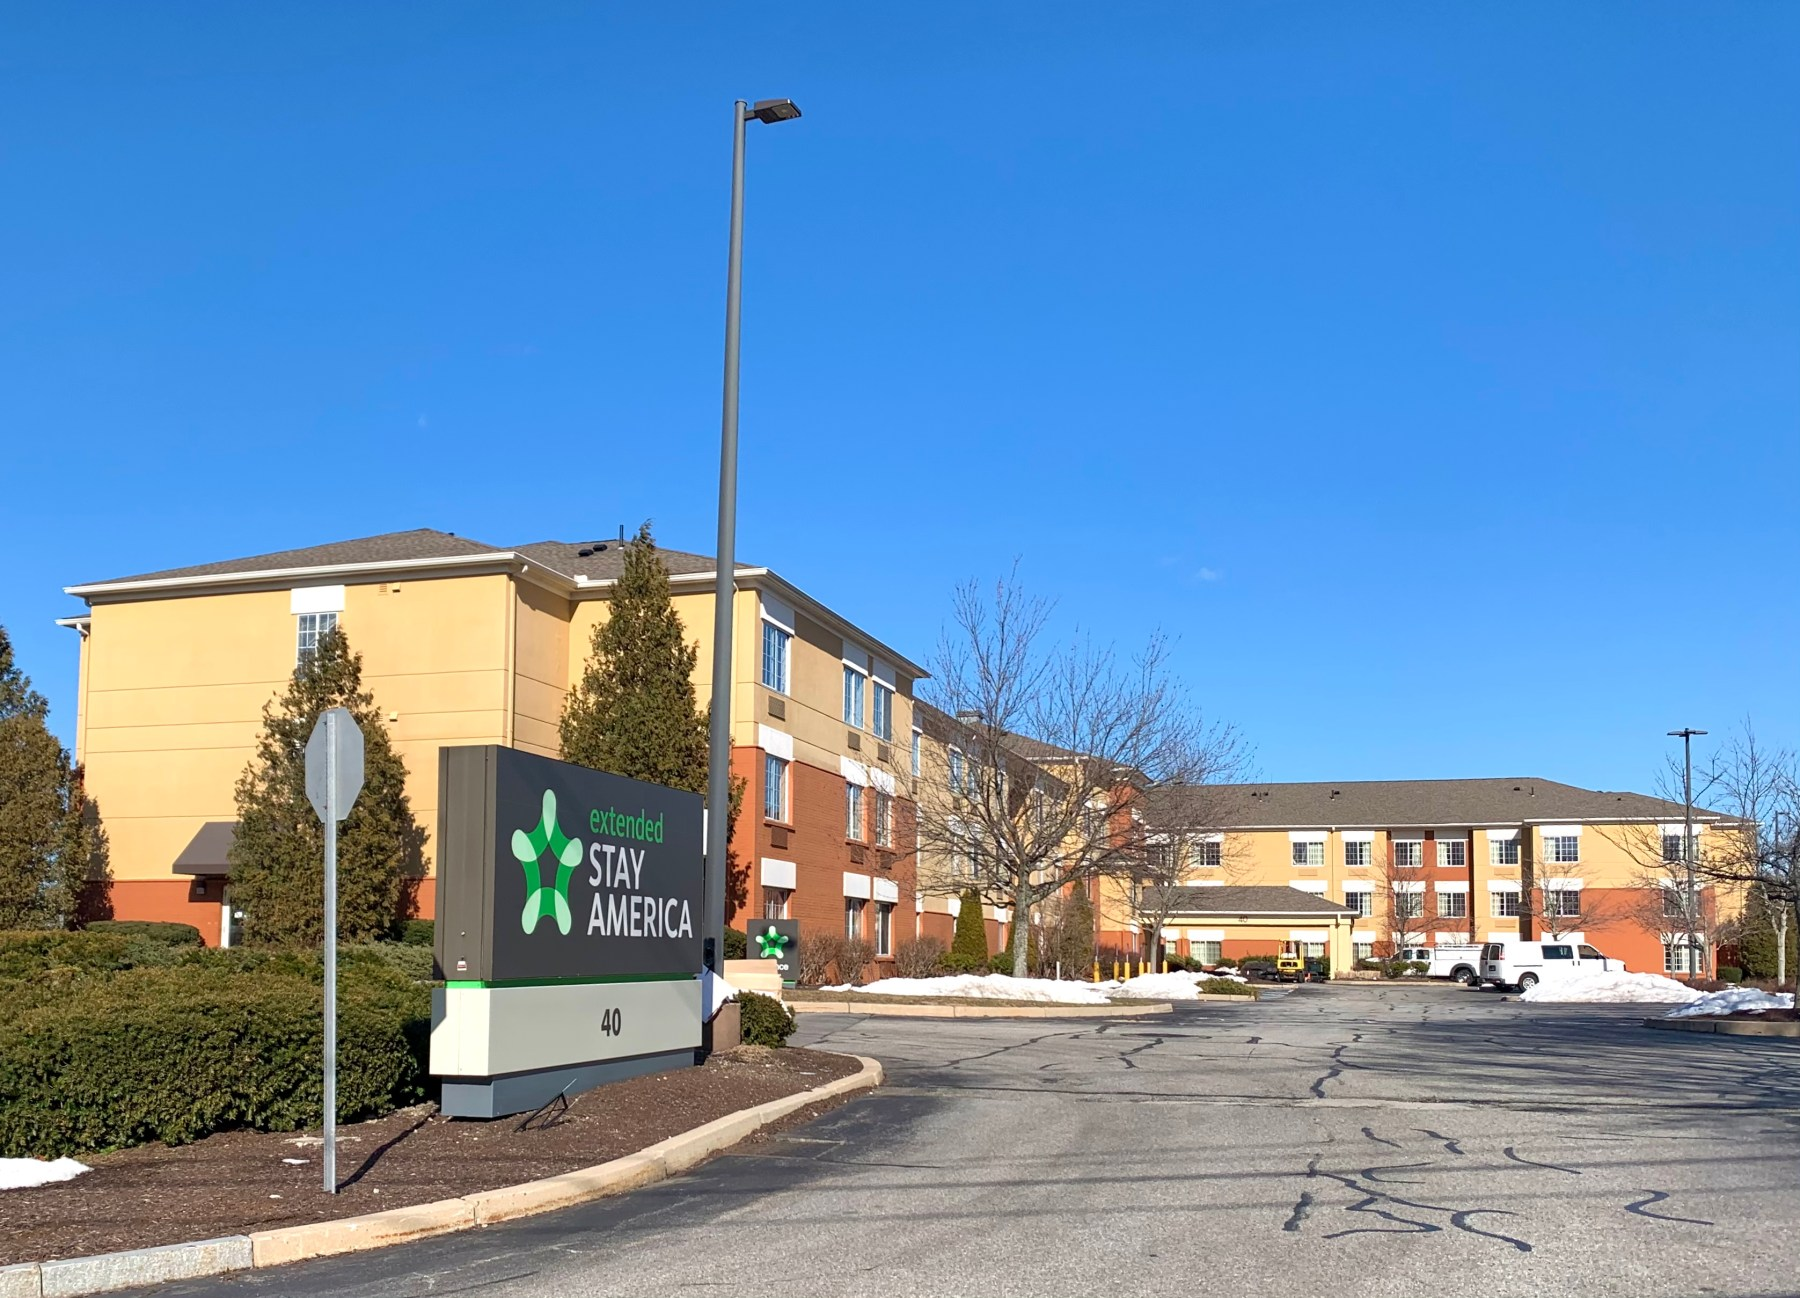 Extended Stay America, 40 South Ave., Burlington, MA